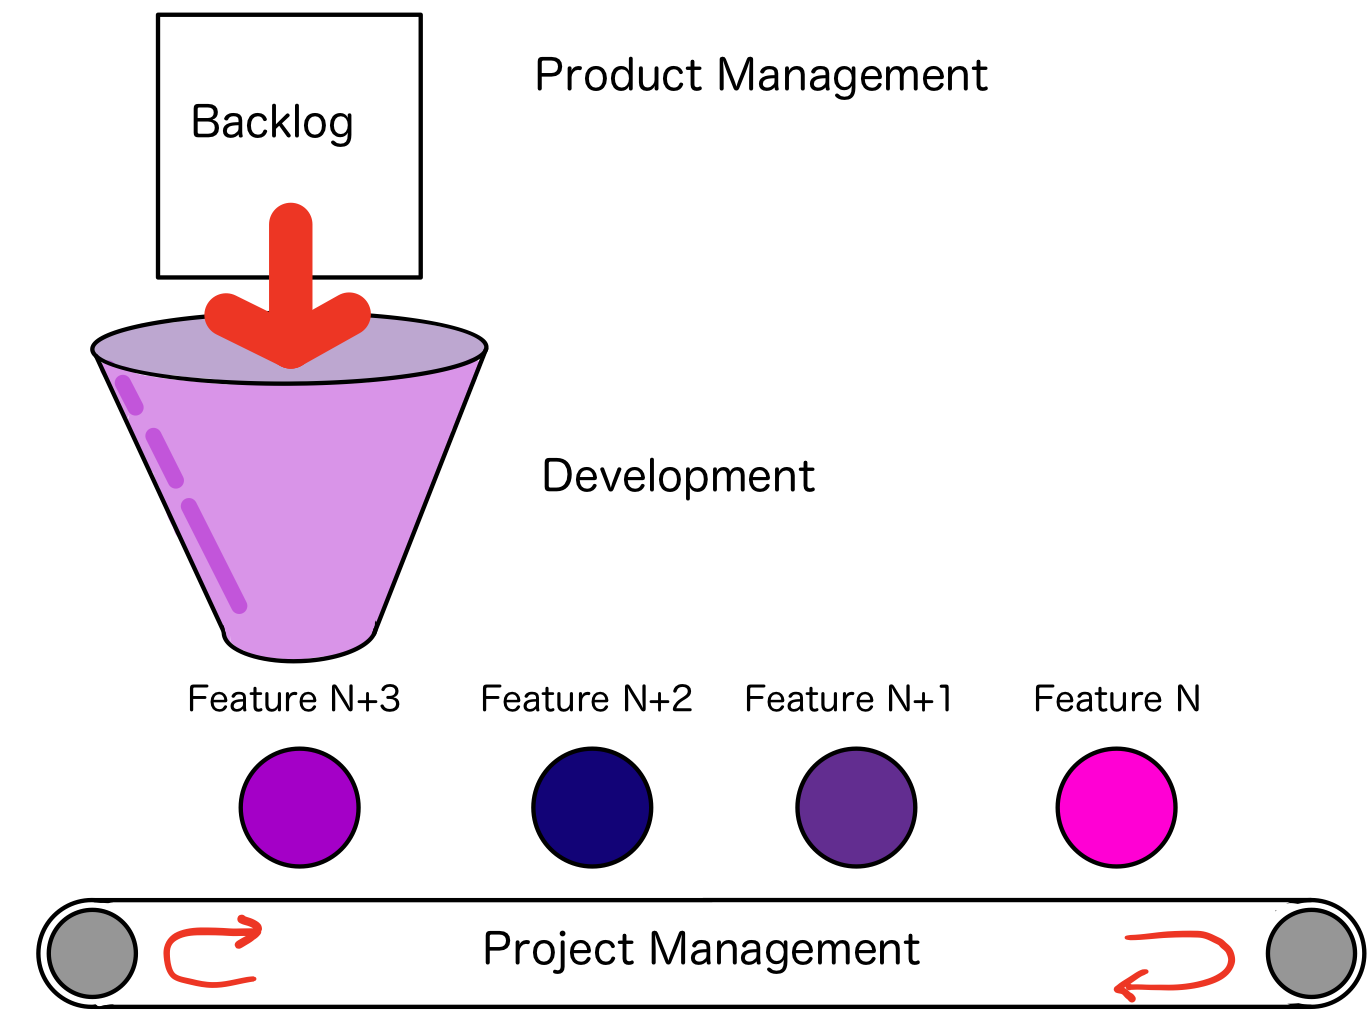 Developers process a backlog to produce features